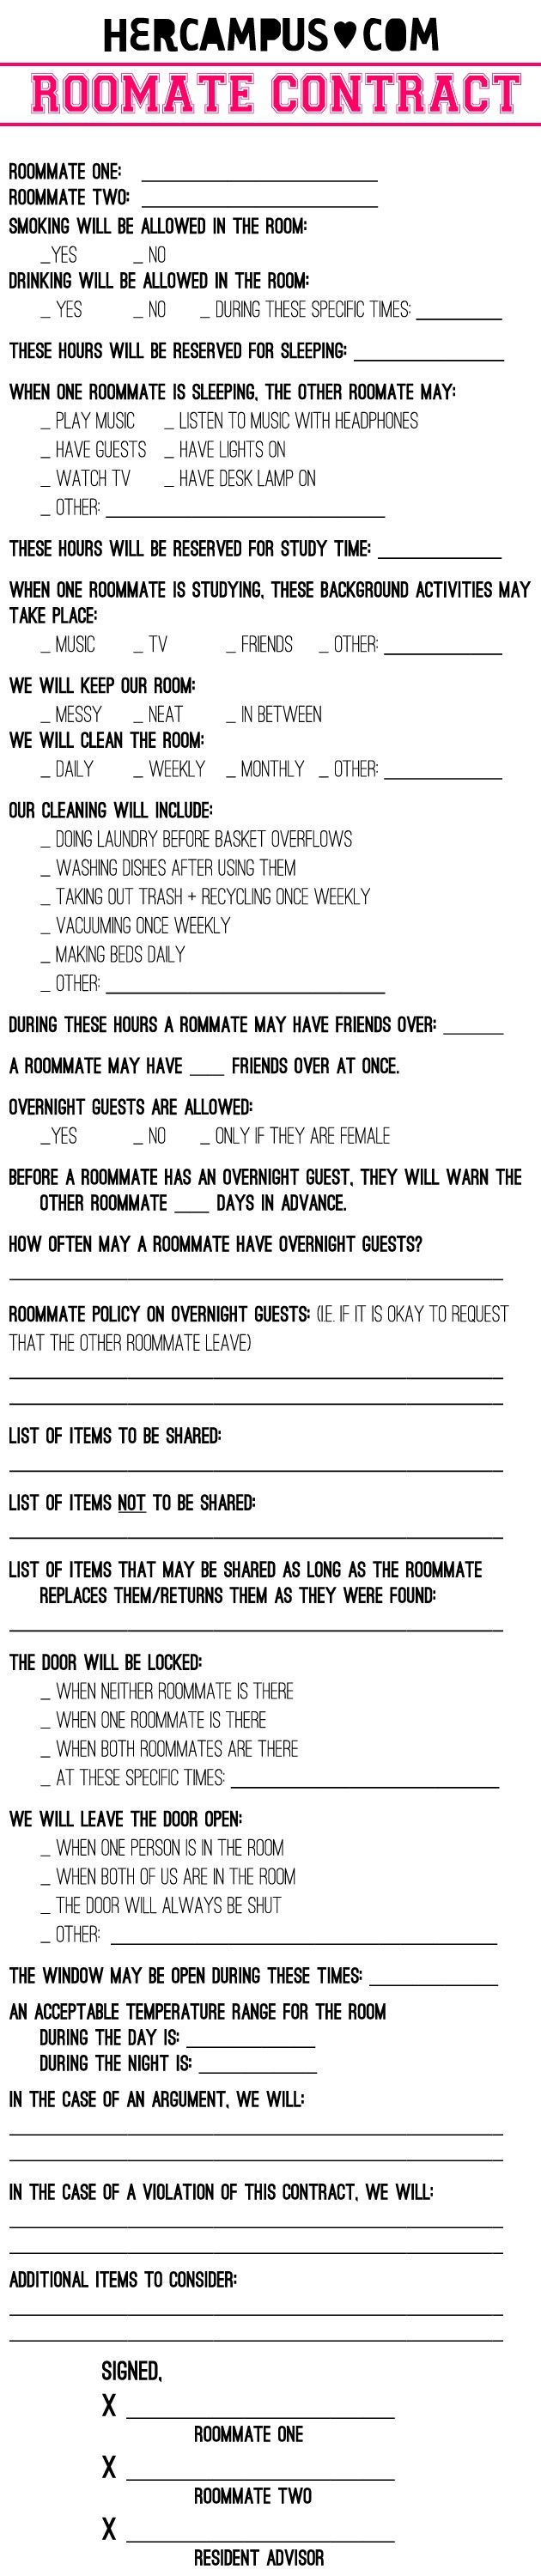 Sample Interior Design Contract Agreement By Best 10 Roommate Ideas On Pinterest College